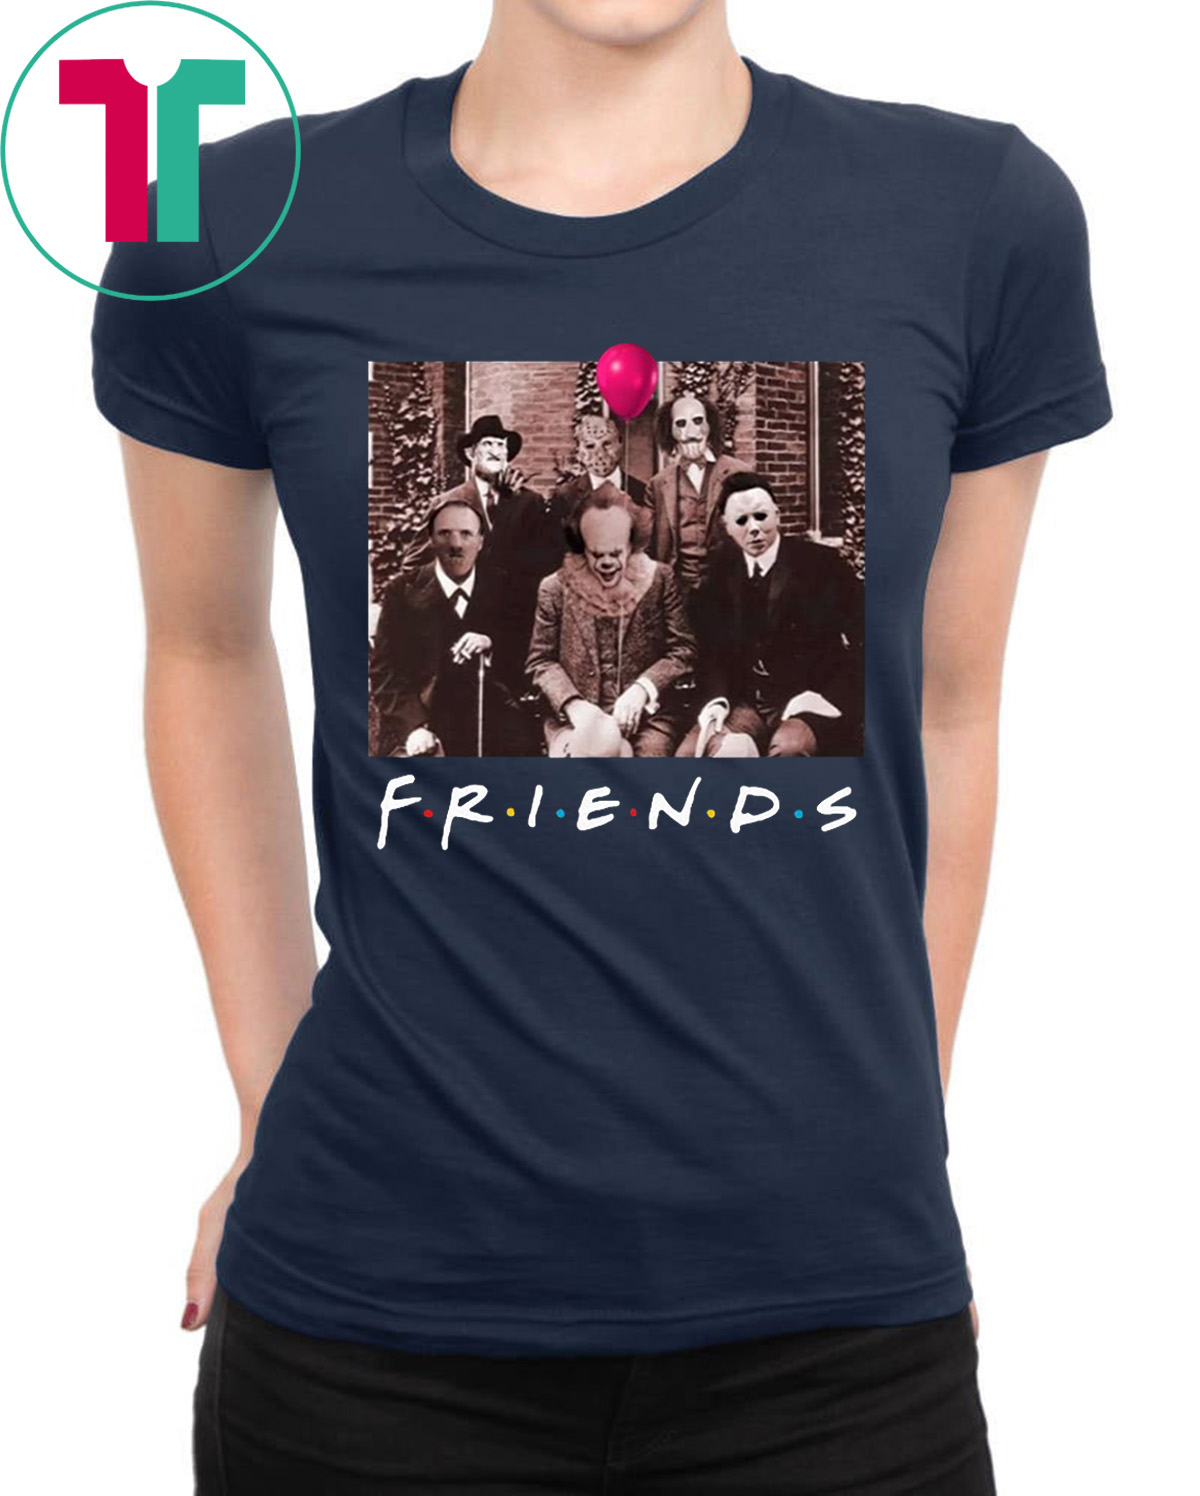 Halloween Friends Shirt.Horror Halloween Team Friends Shirt Tee Shirt Reviewshirts Office